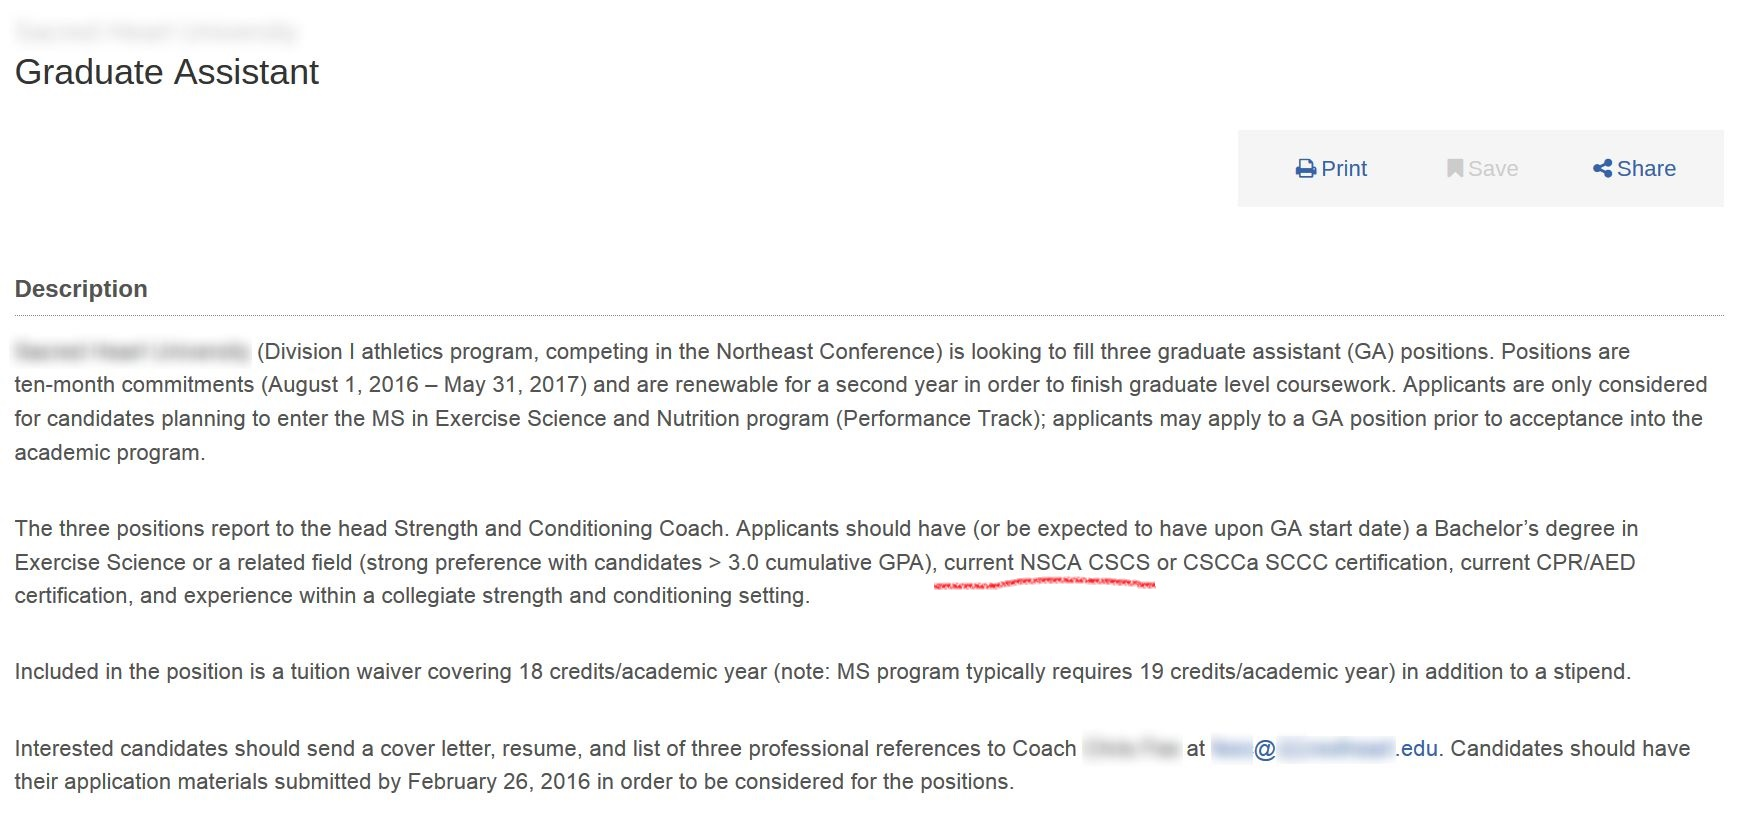 100 cover letter for graduate assistantship cover letter cover letter axxis consulting to guide census enumerator sample how to pass the cscs exam in 90 days madrichimfo Choice Image